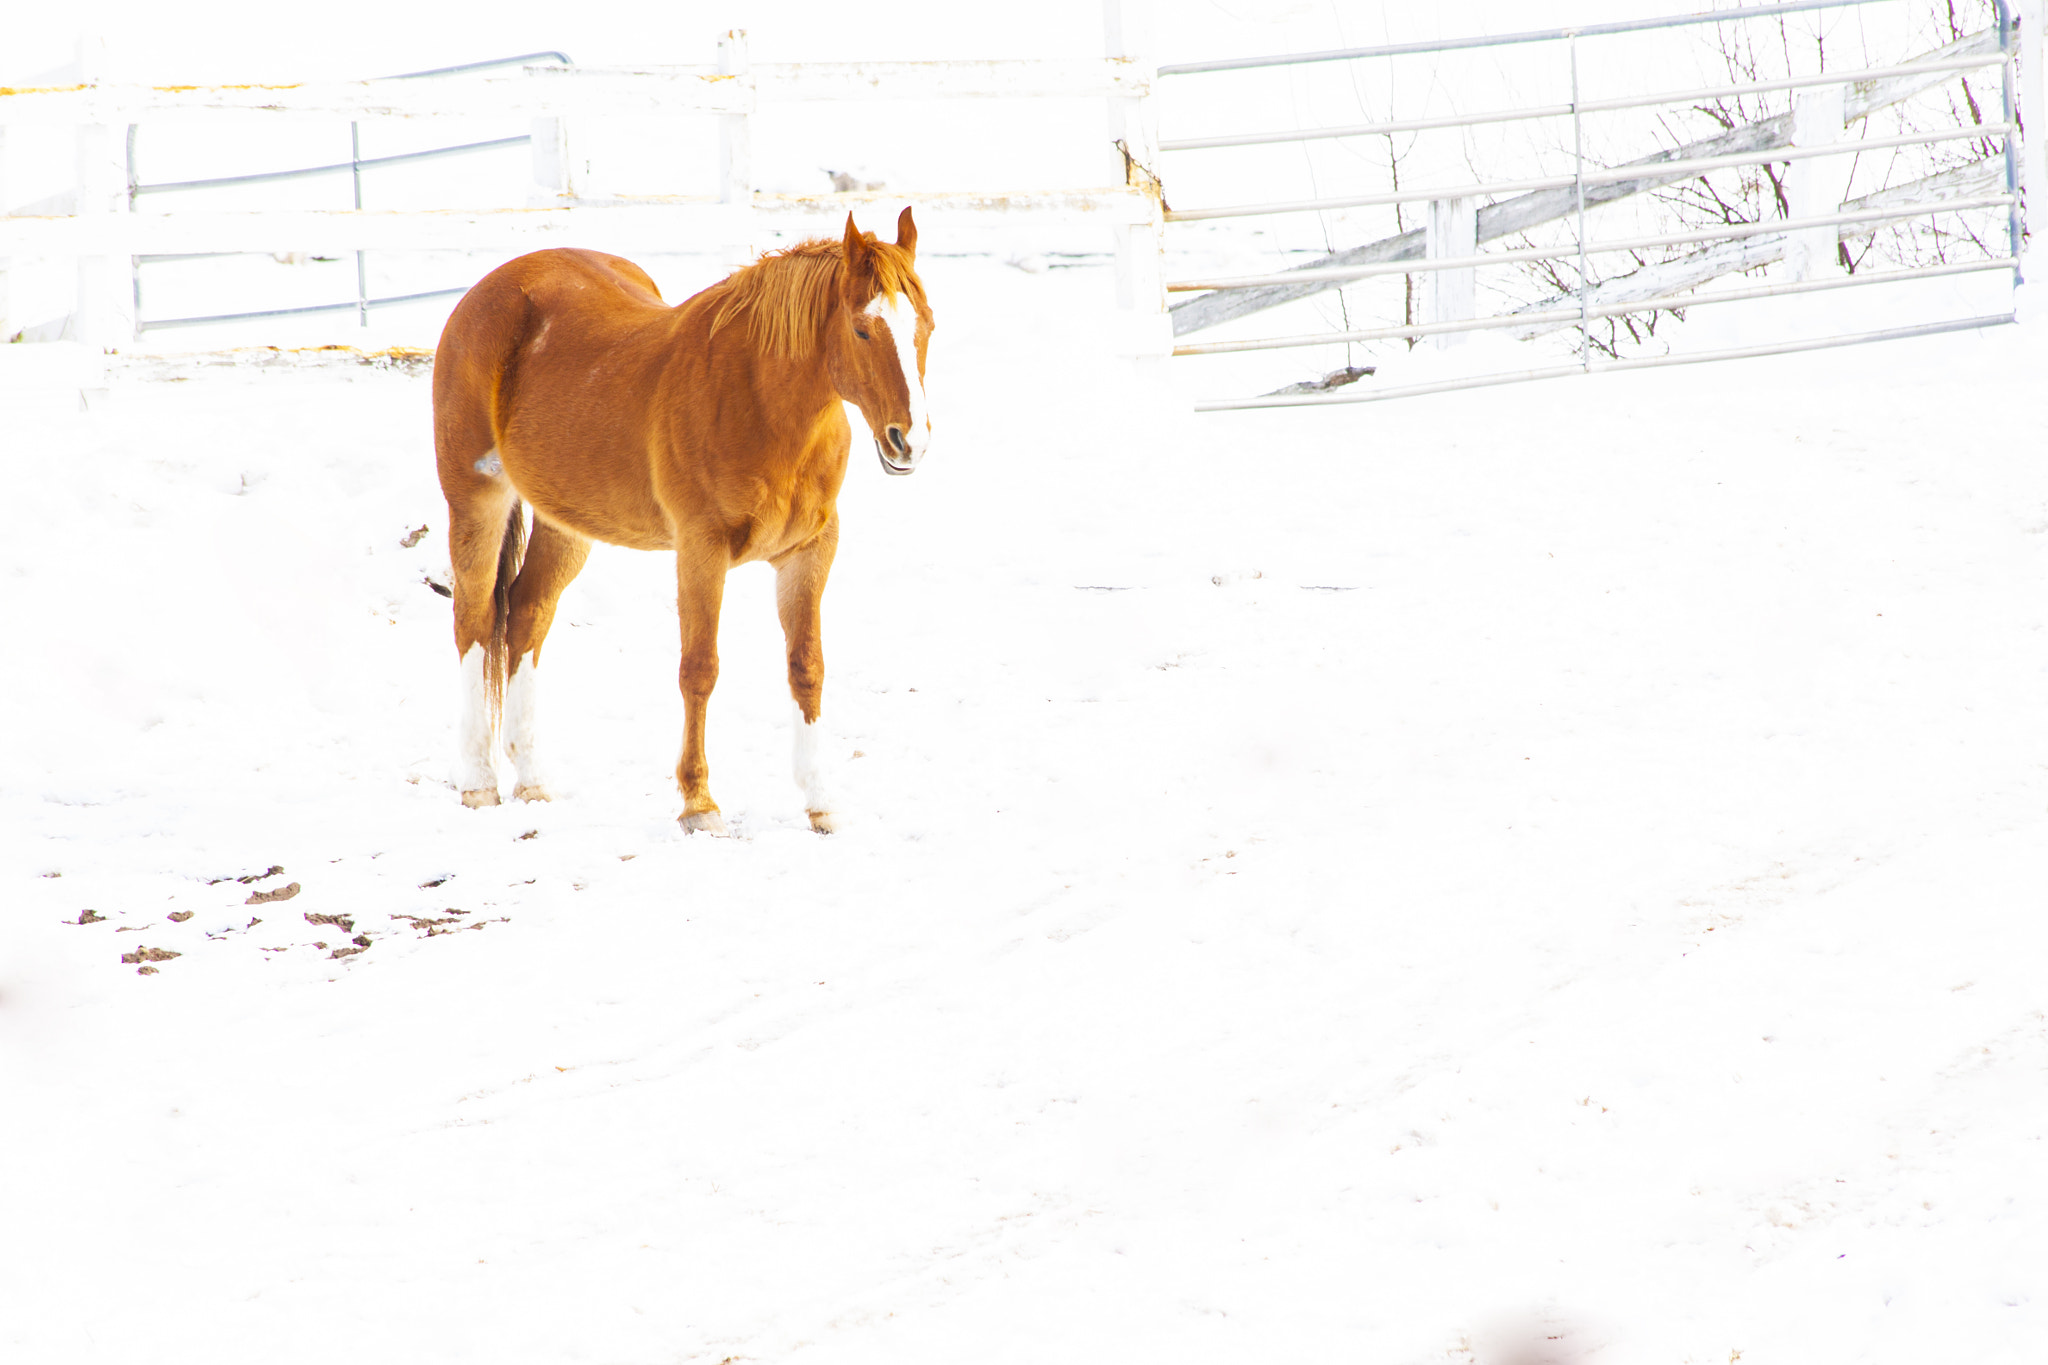 Photograph Horse in a snow land by Samir Mohanty on 500px